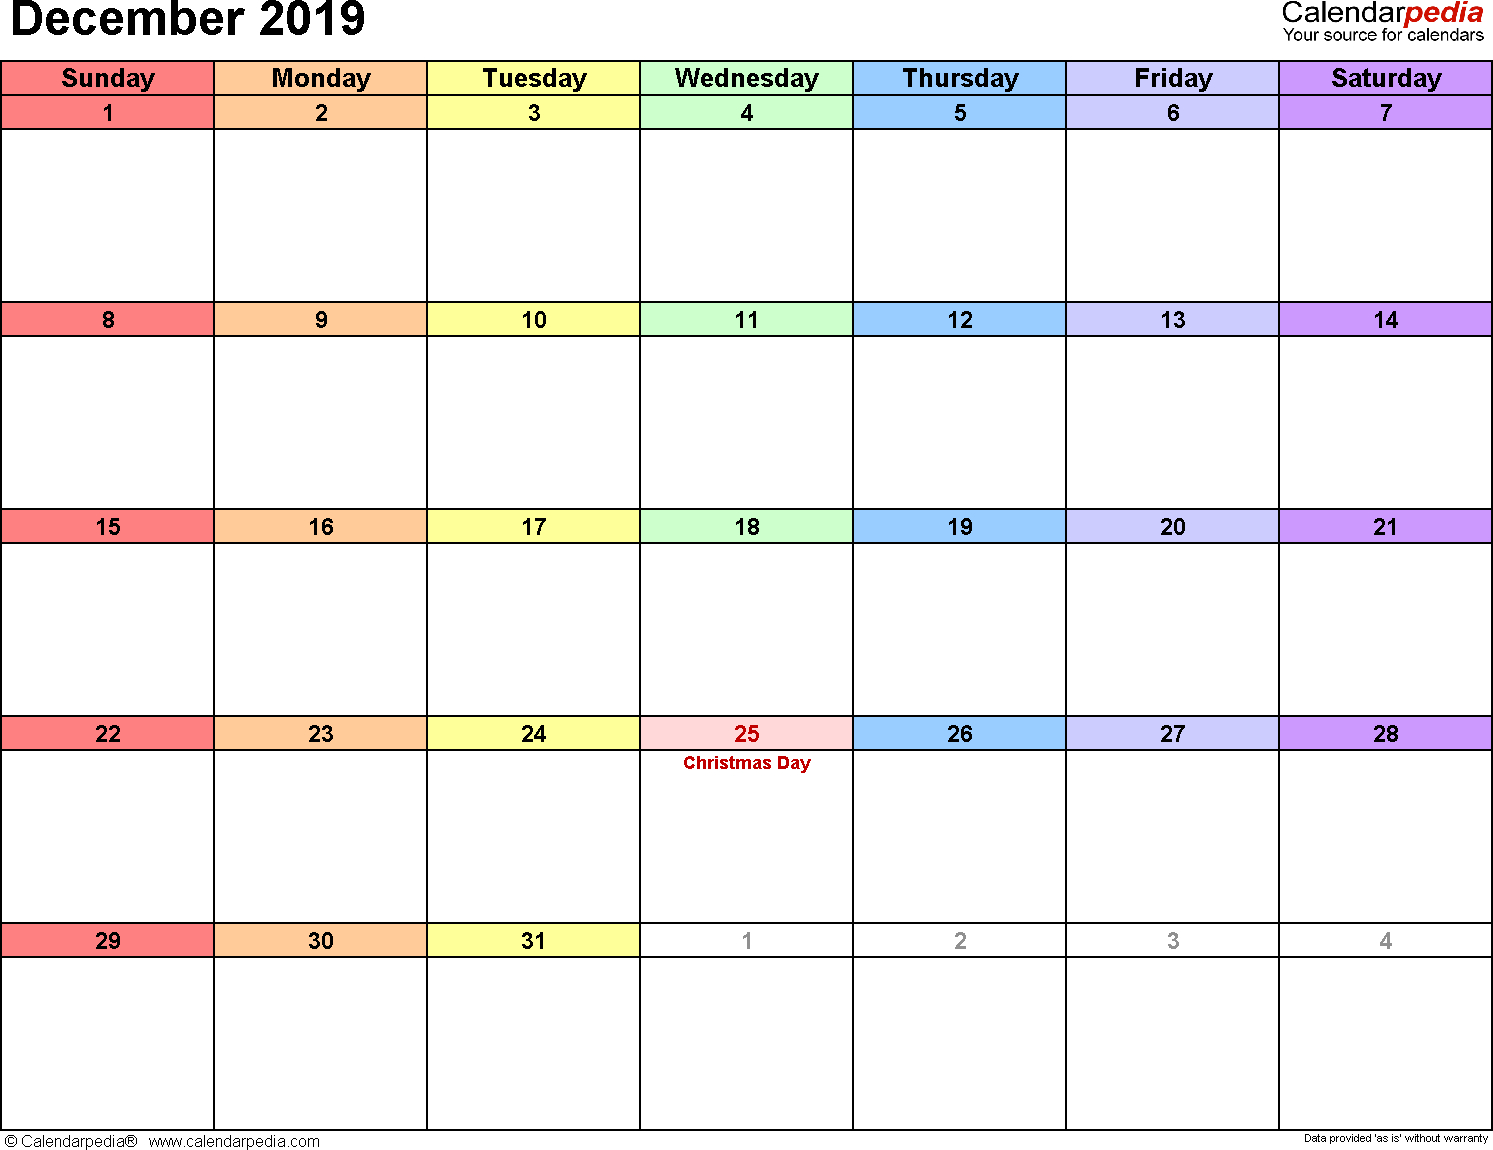 December 2019 Calendars For Word, Excel & Pdf